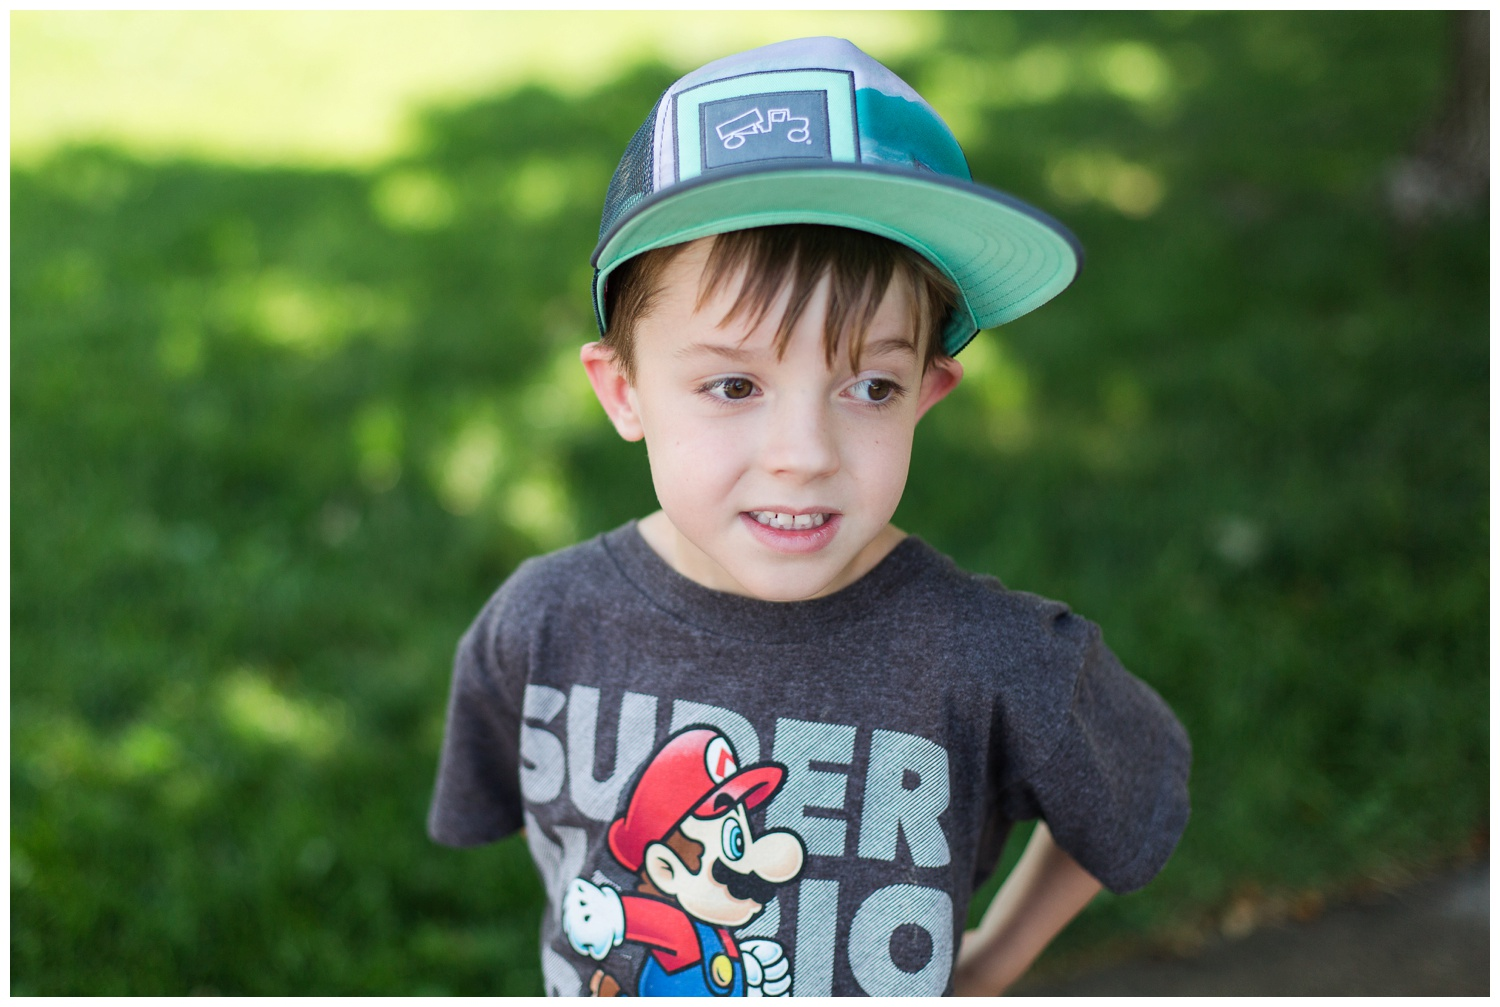 Declan LOVES to wear any kind of shirt with a character on the front of it! And Big Truck hats are always in style!